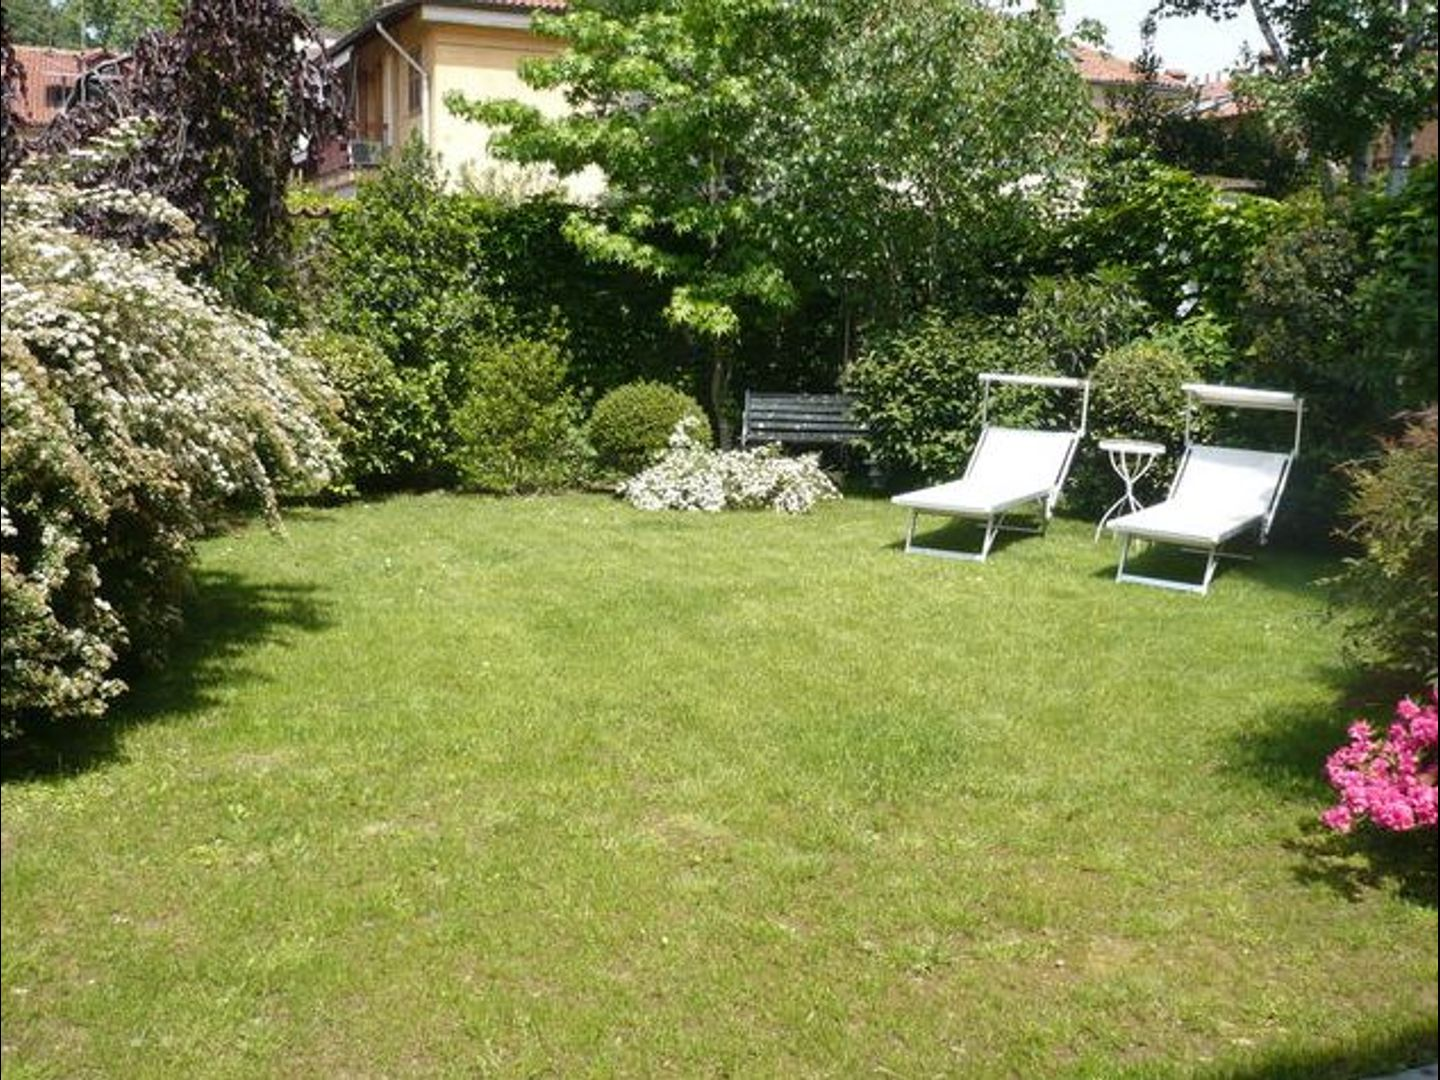 """A couple of lawn chairs sitting on top of a lush green field at B&B of """"I BRAVI"""" - Charming Guest House."""